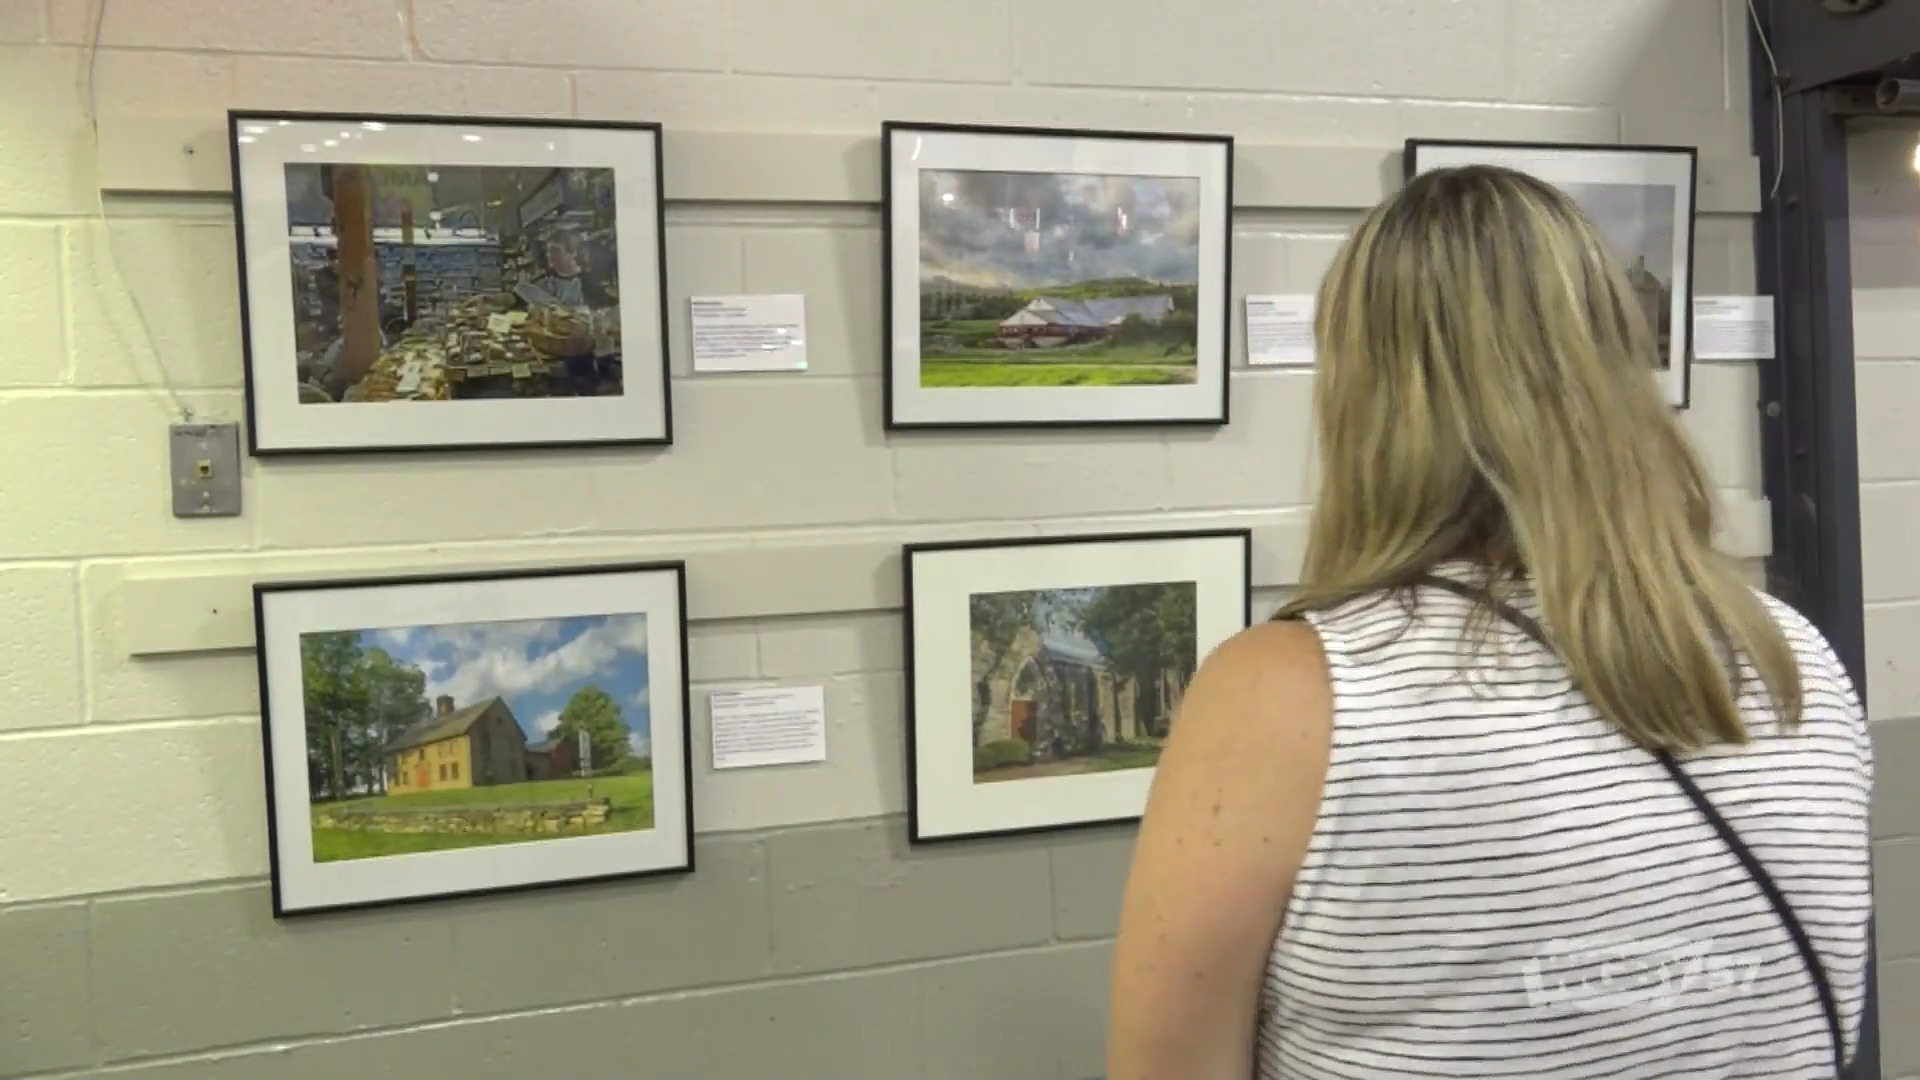 43 Towns, a photo exhibit at the Big E, features a single photo depicting life in each of the 43 towns that make up Hampden and Hampshire Counties.